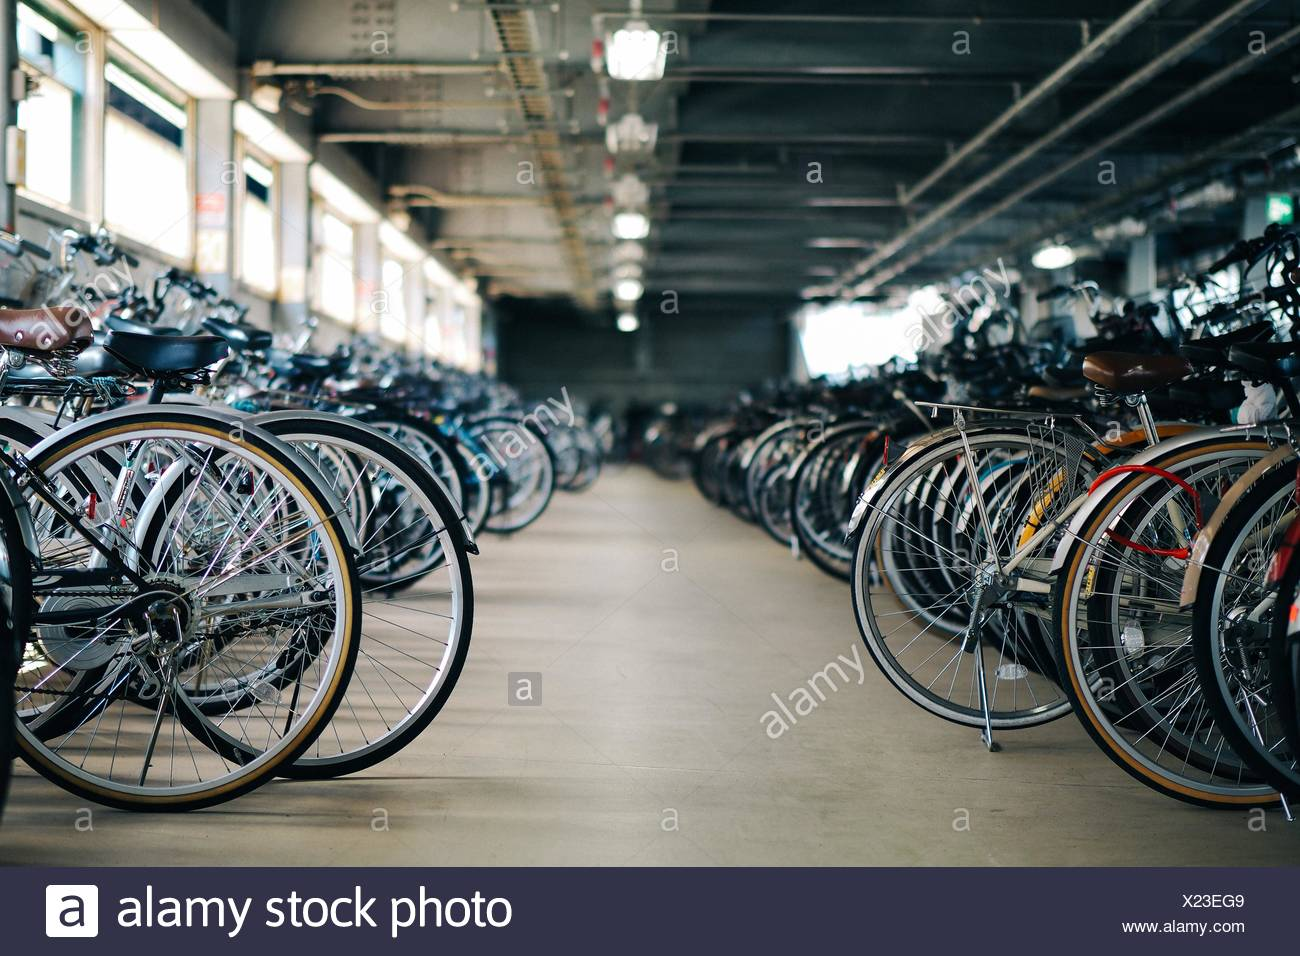 Interior Of Bicycle Parking Lot - Stock Image